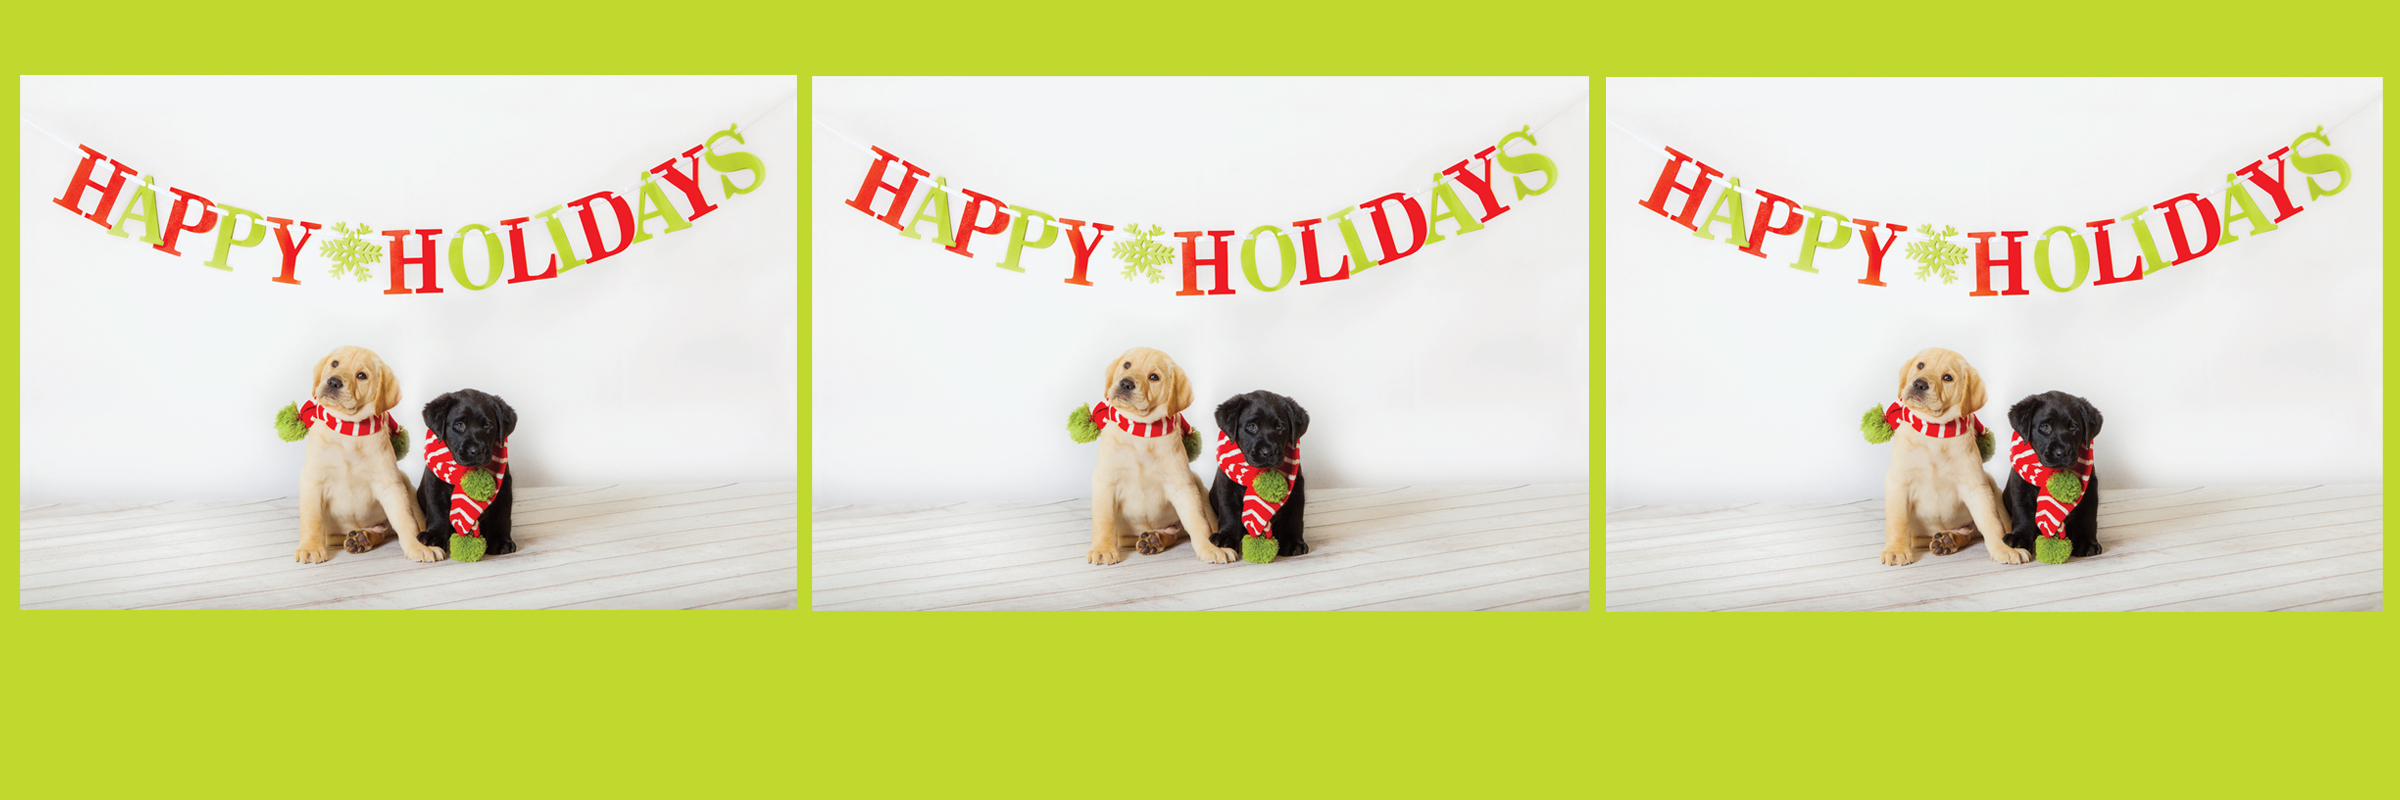 """Two baby Labrador puppies (one yellow, one black) sit front and center beneath a banner that reads """"Happy Holidays."""" The pups are wearing red scarves."""